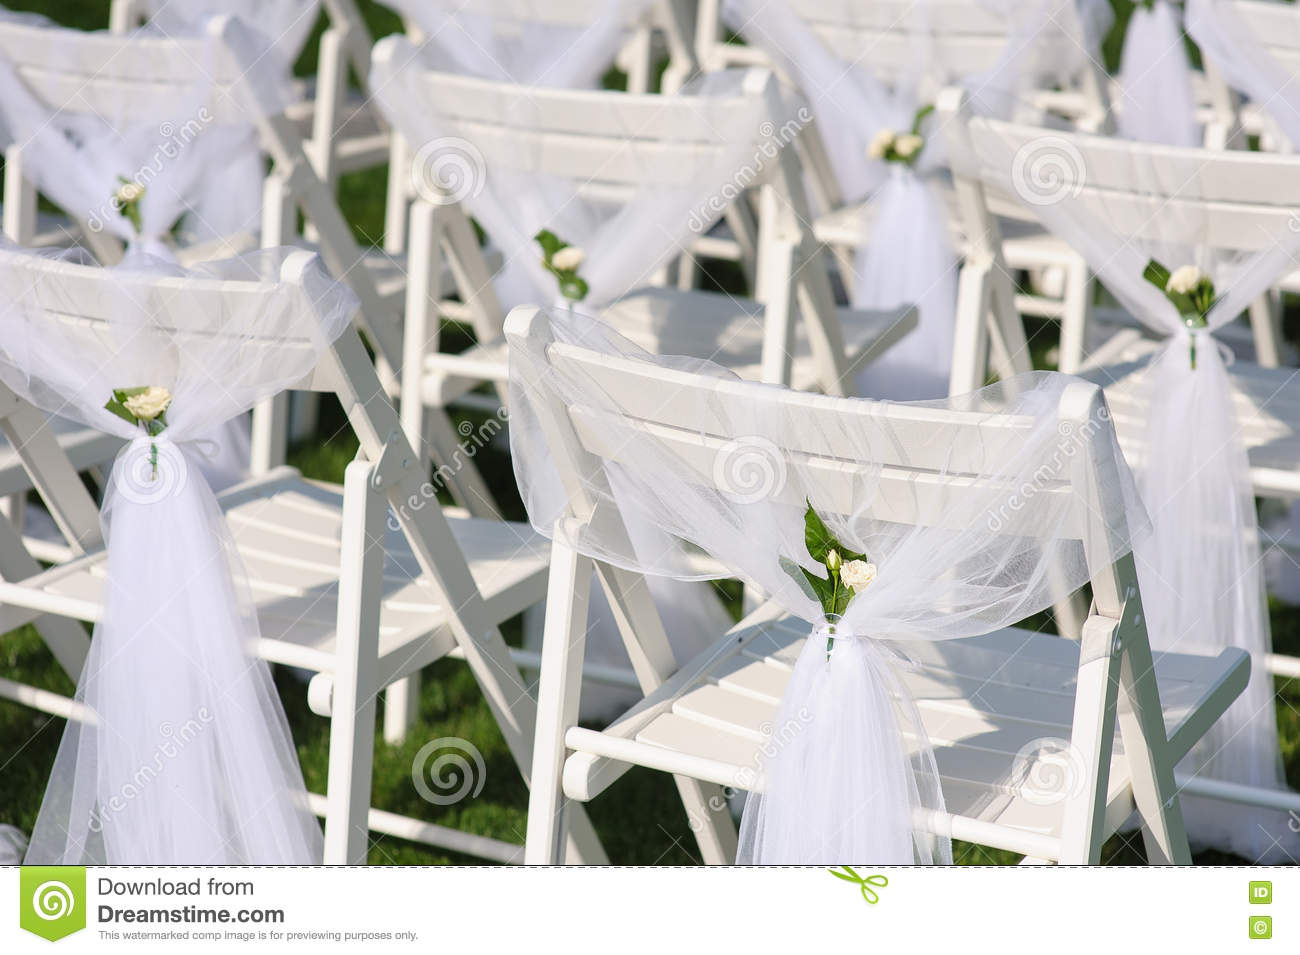 White Chairs At A Wedding Indoor Stock Photo: White Decorated Chairs On A Green Lawn Stock Photo